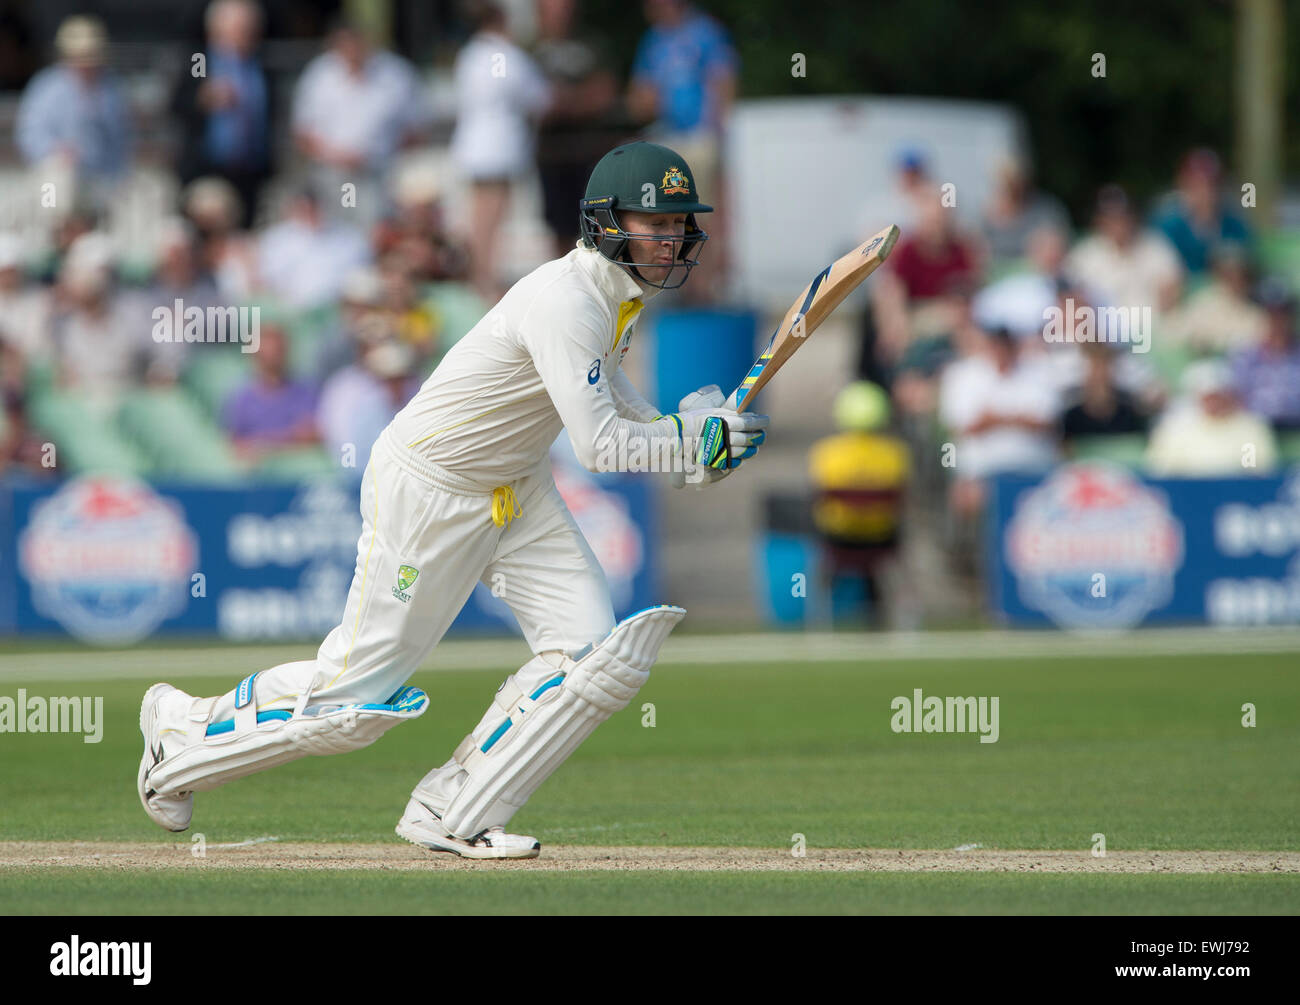 Australia's Michael Clarke on the opening day of the tour match at the Spitfire Ground, St Lawrence, Canterbury, - Stock Image